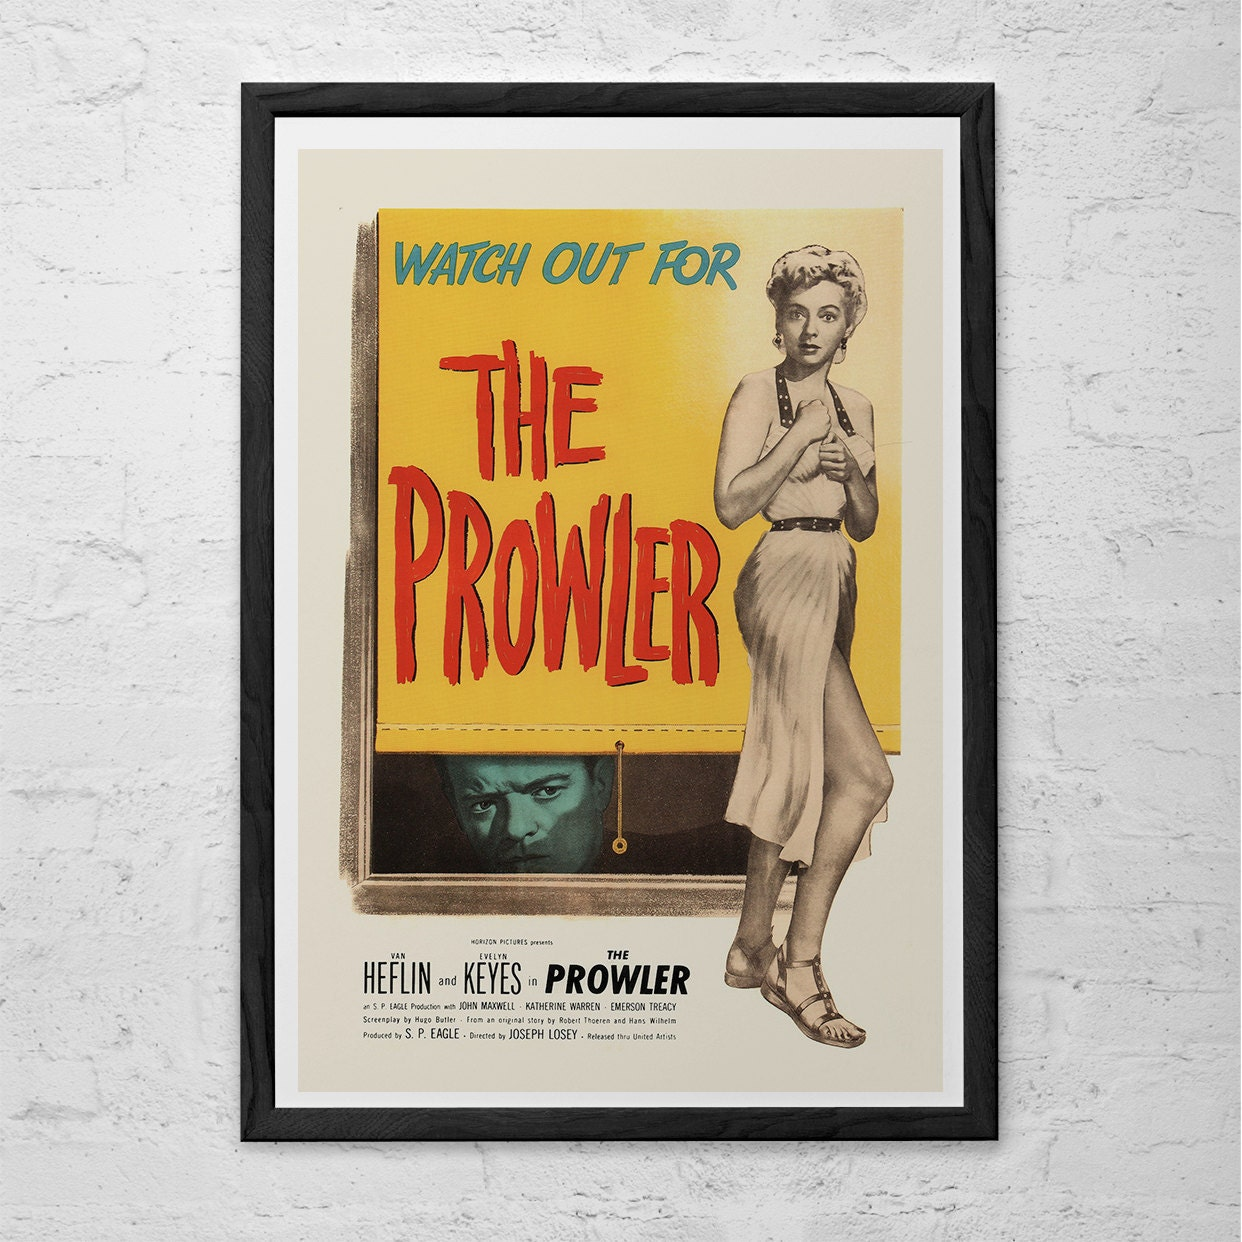 Movie poster reproductions for sale